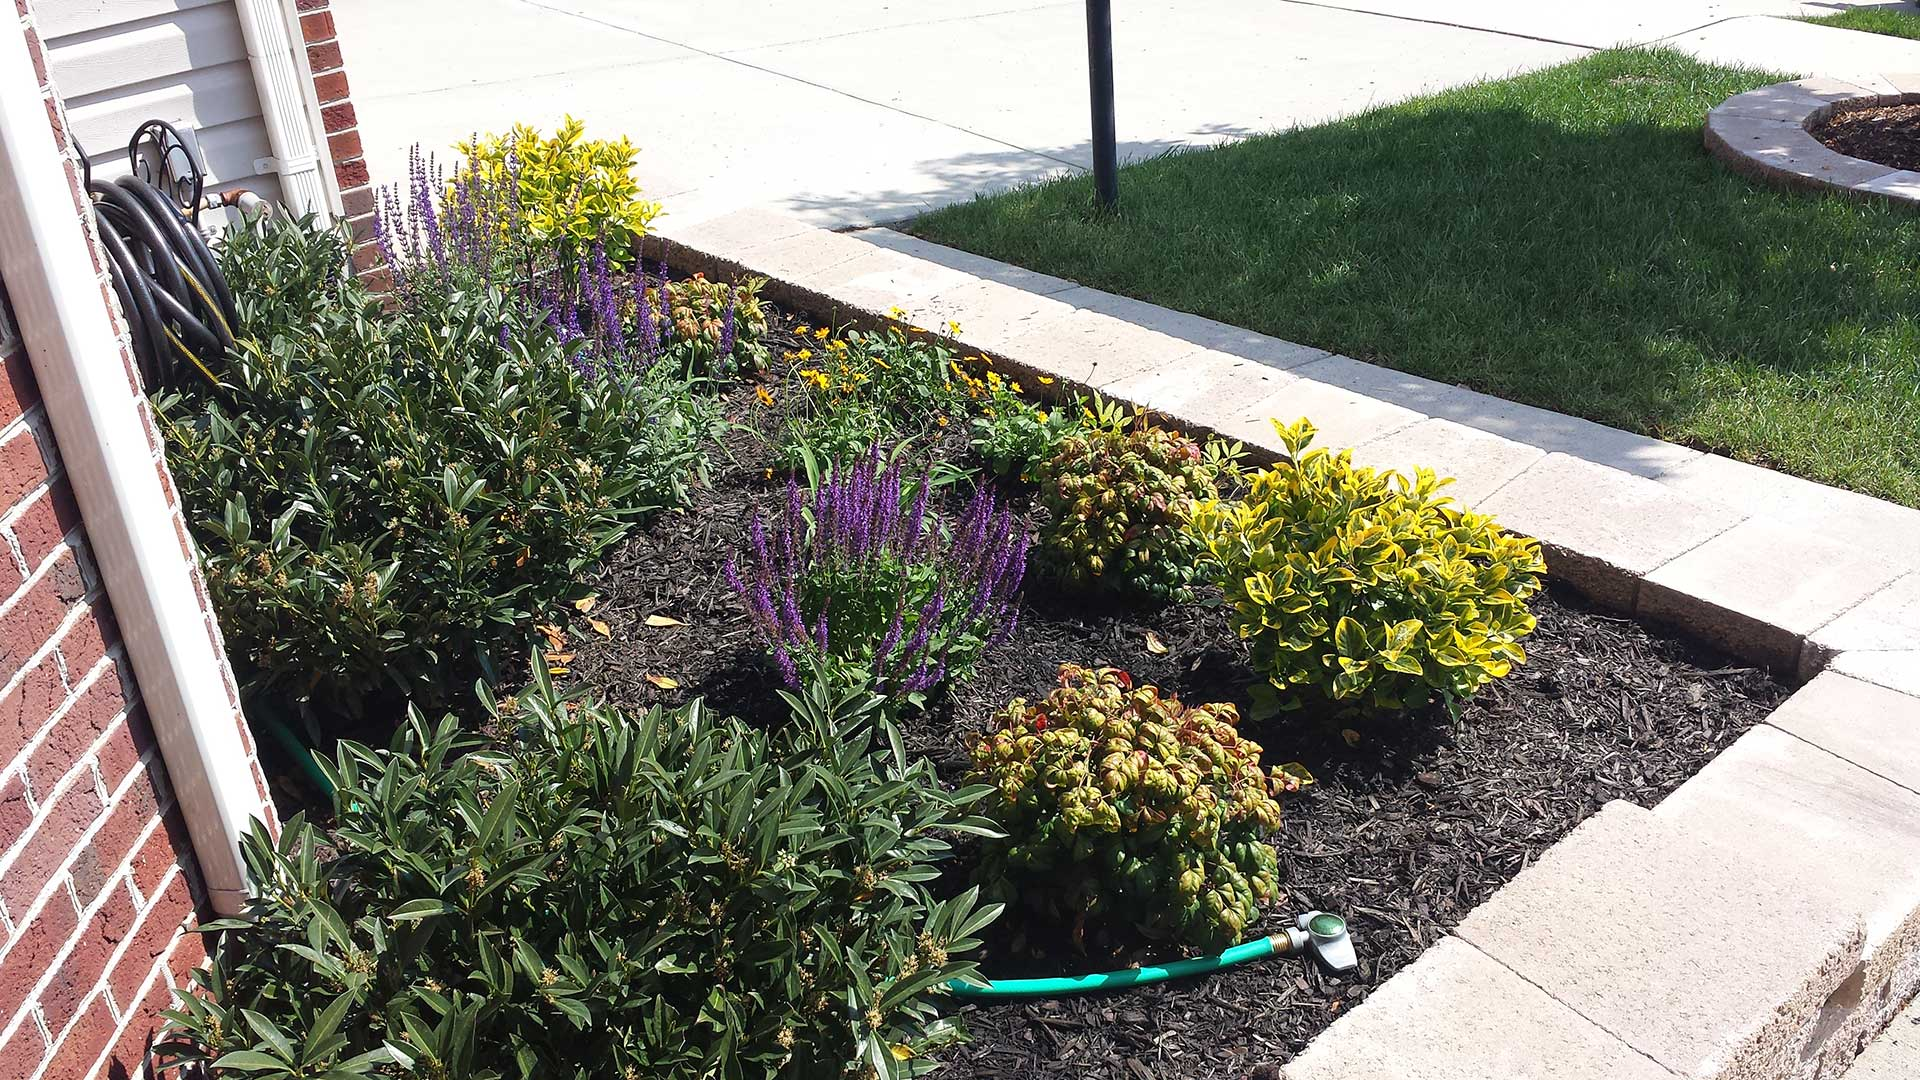 Our landscape maintenance services for Haymarket include ground cover installation, weeding, trimming and pruning, and more.